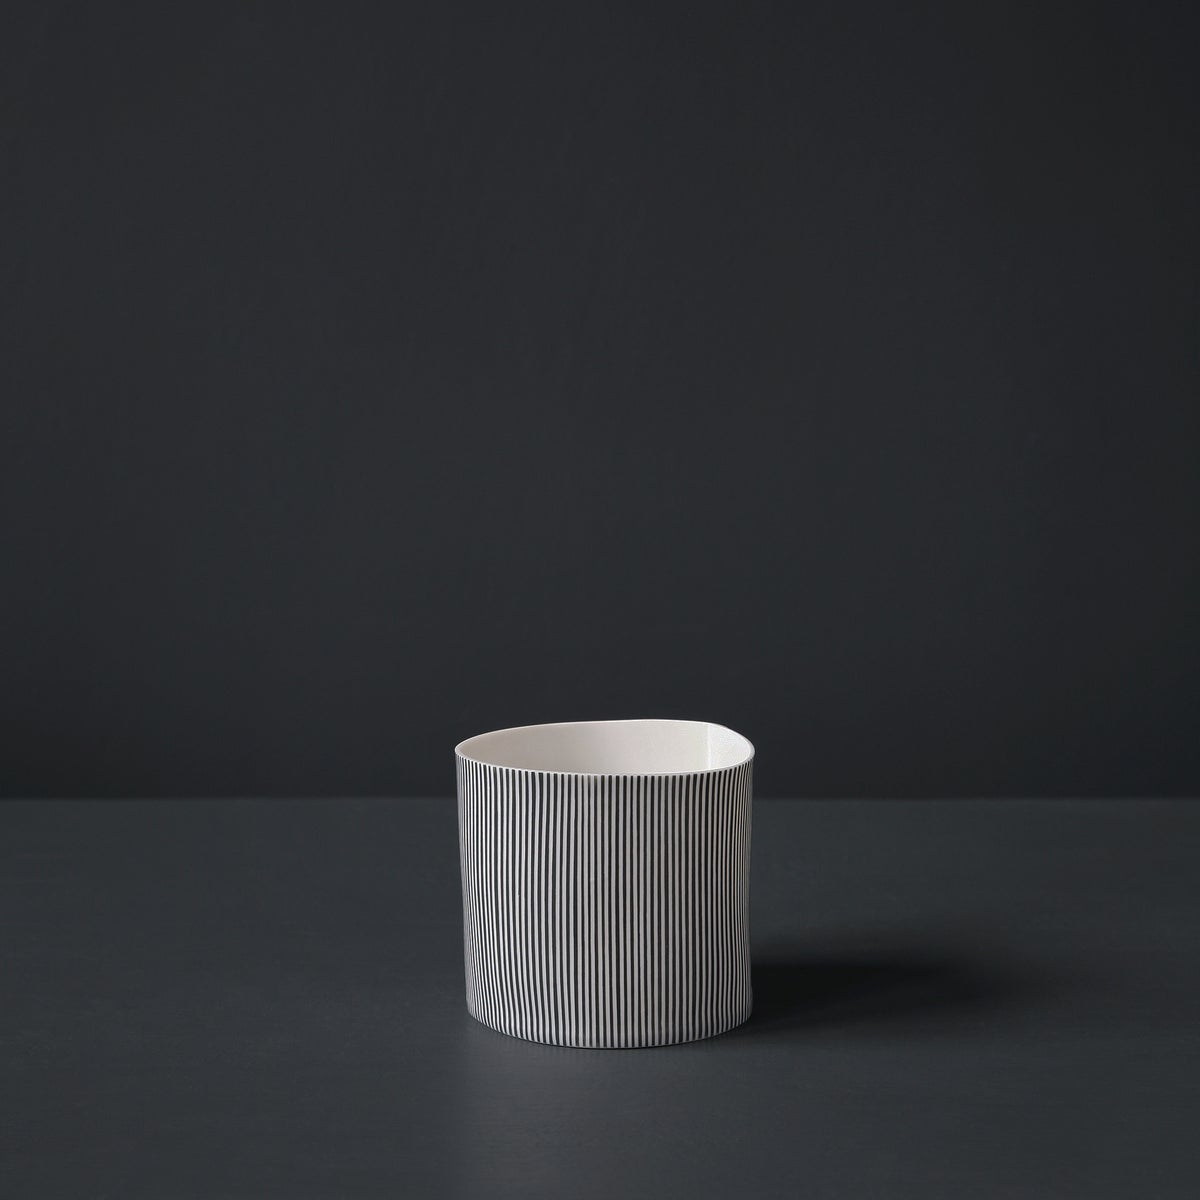 Image of Straight Stripe Vessel #3 by Justine Allison.